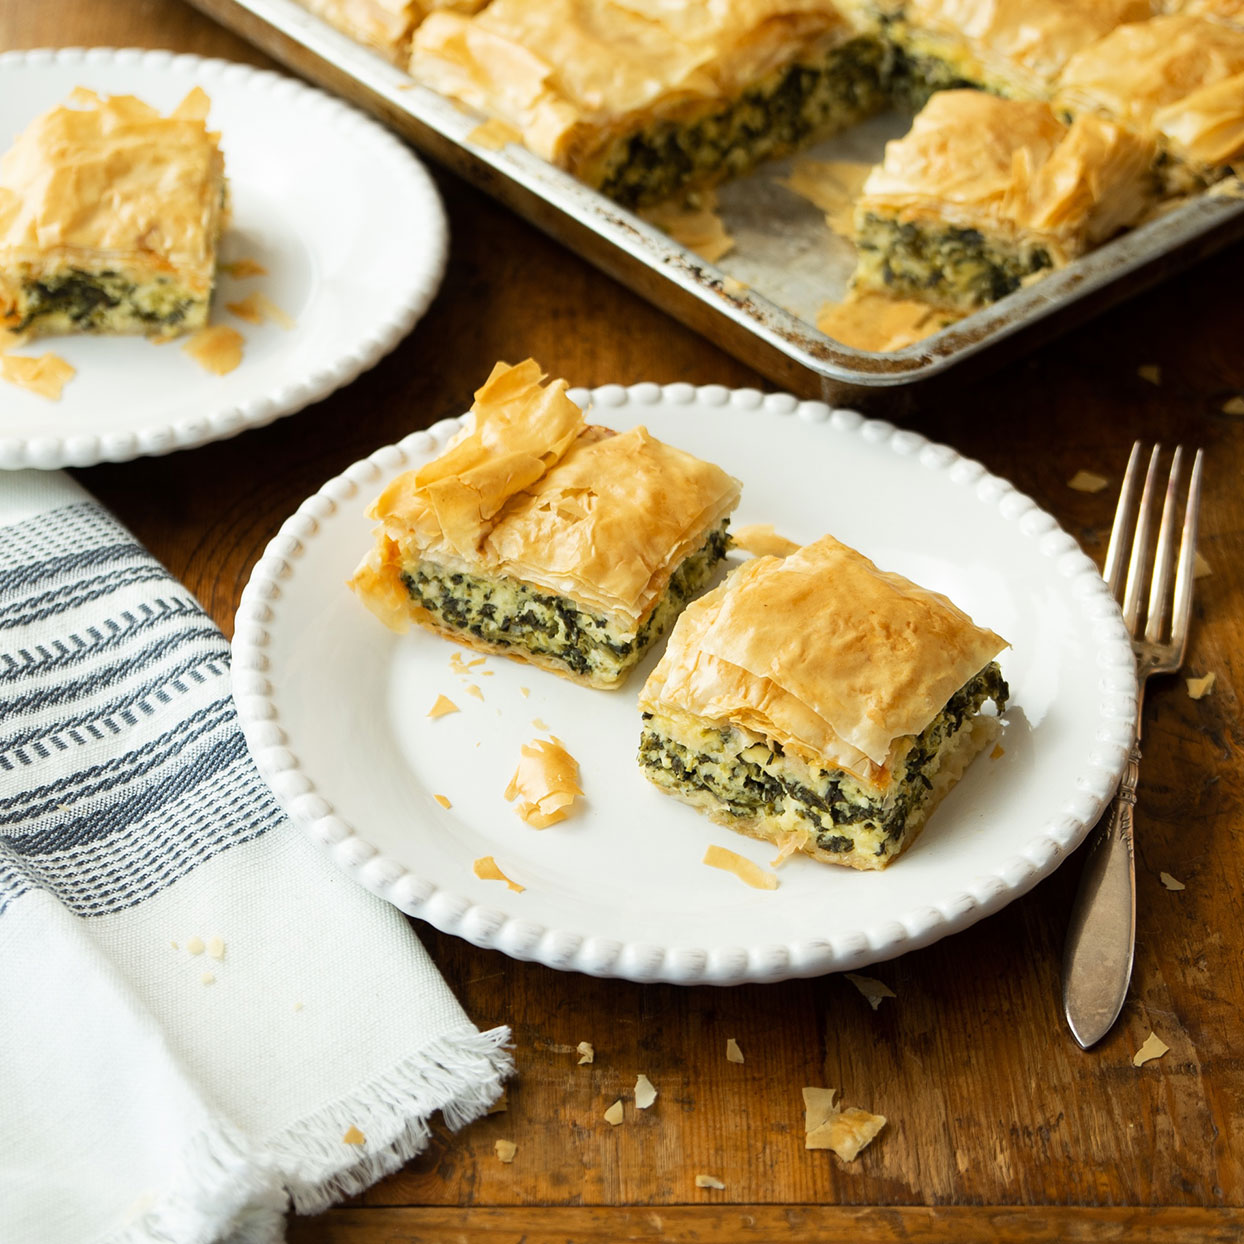 My Greek Grandma's Secrets for Making the Best Spanakopita